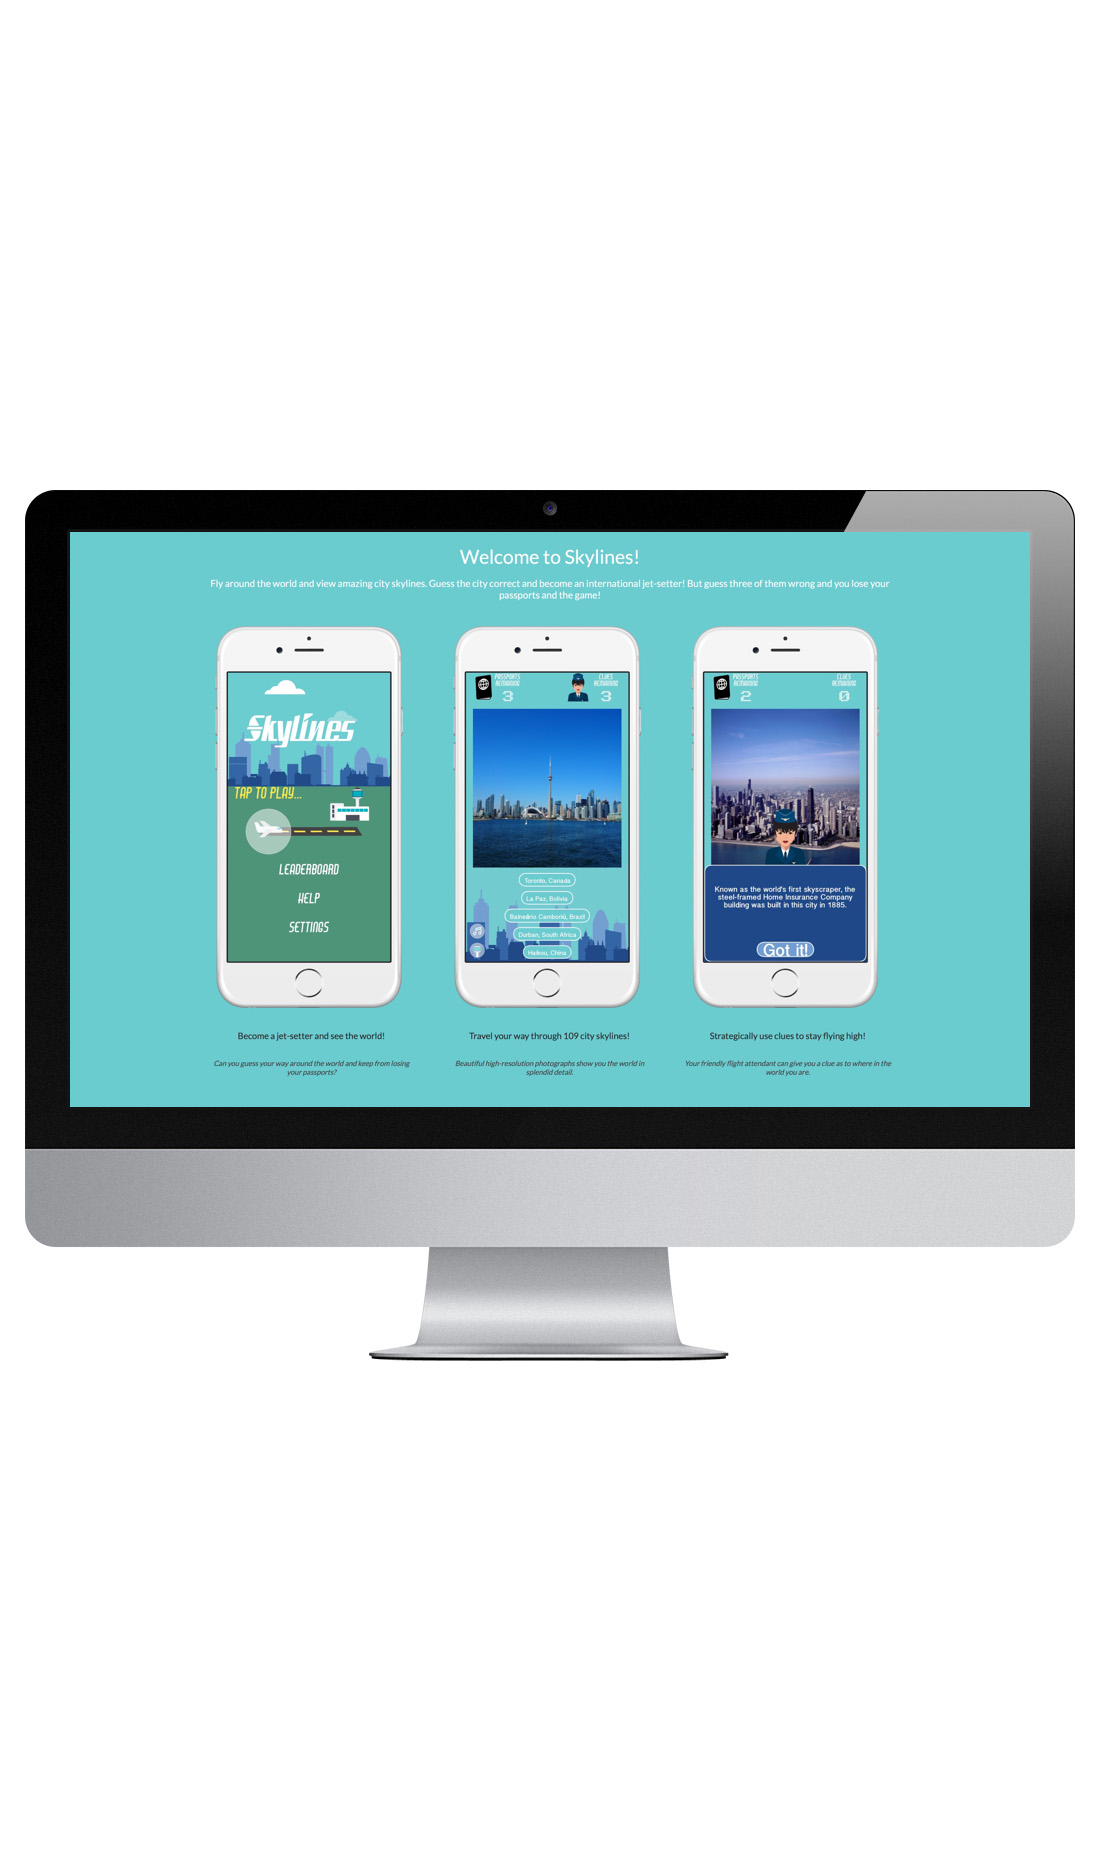 Rich, beautiful colors and a strong theme come together to cast the Skylines app in a most positive light.